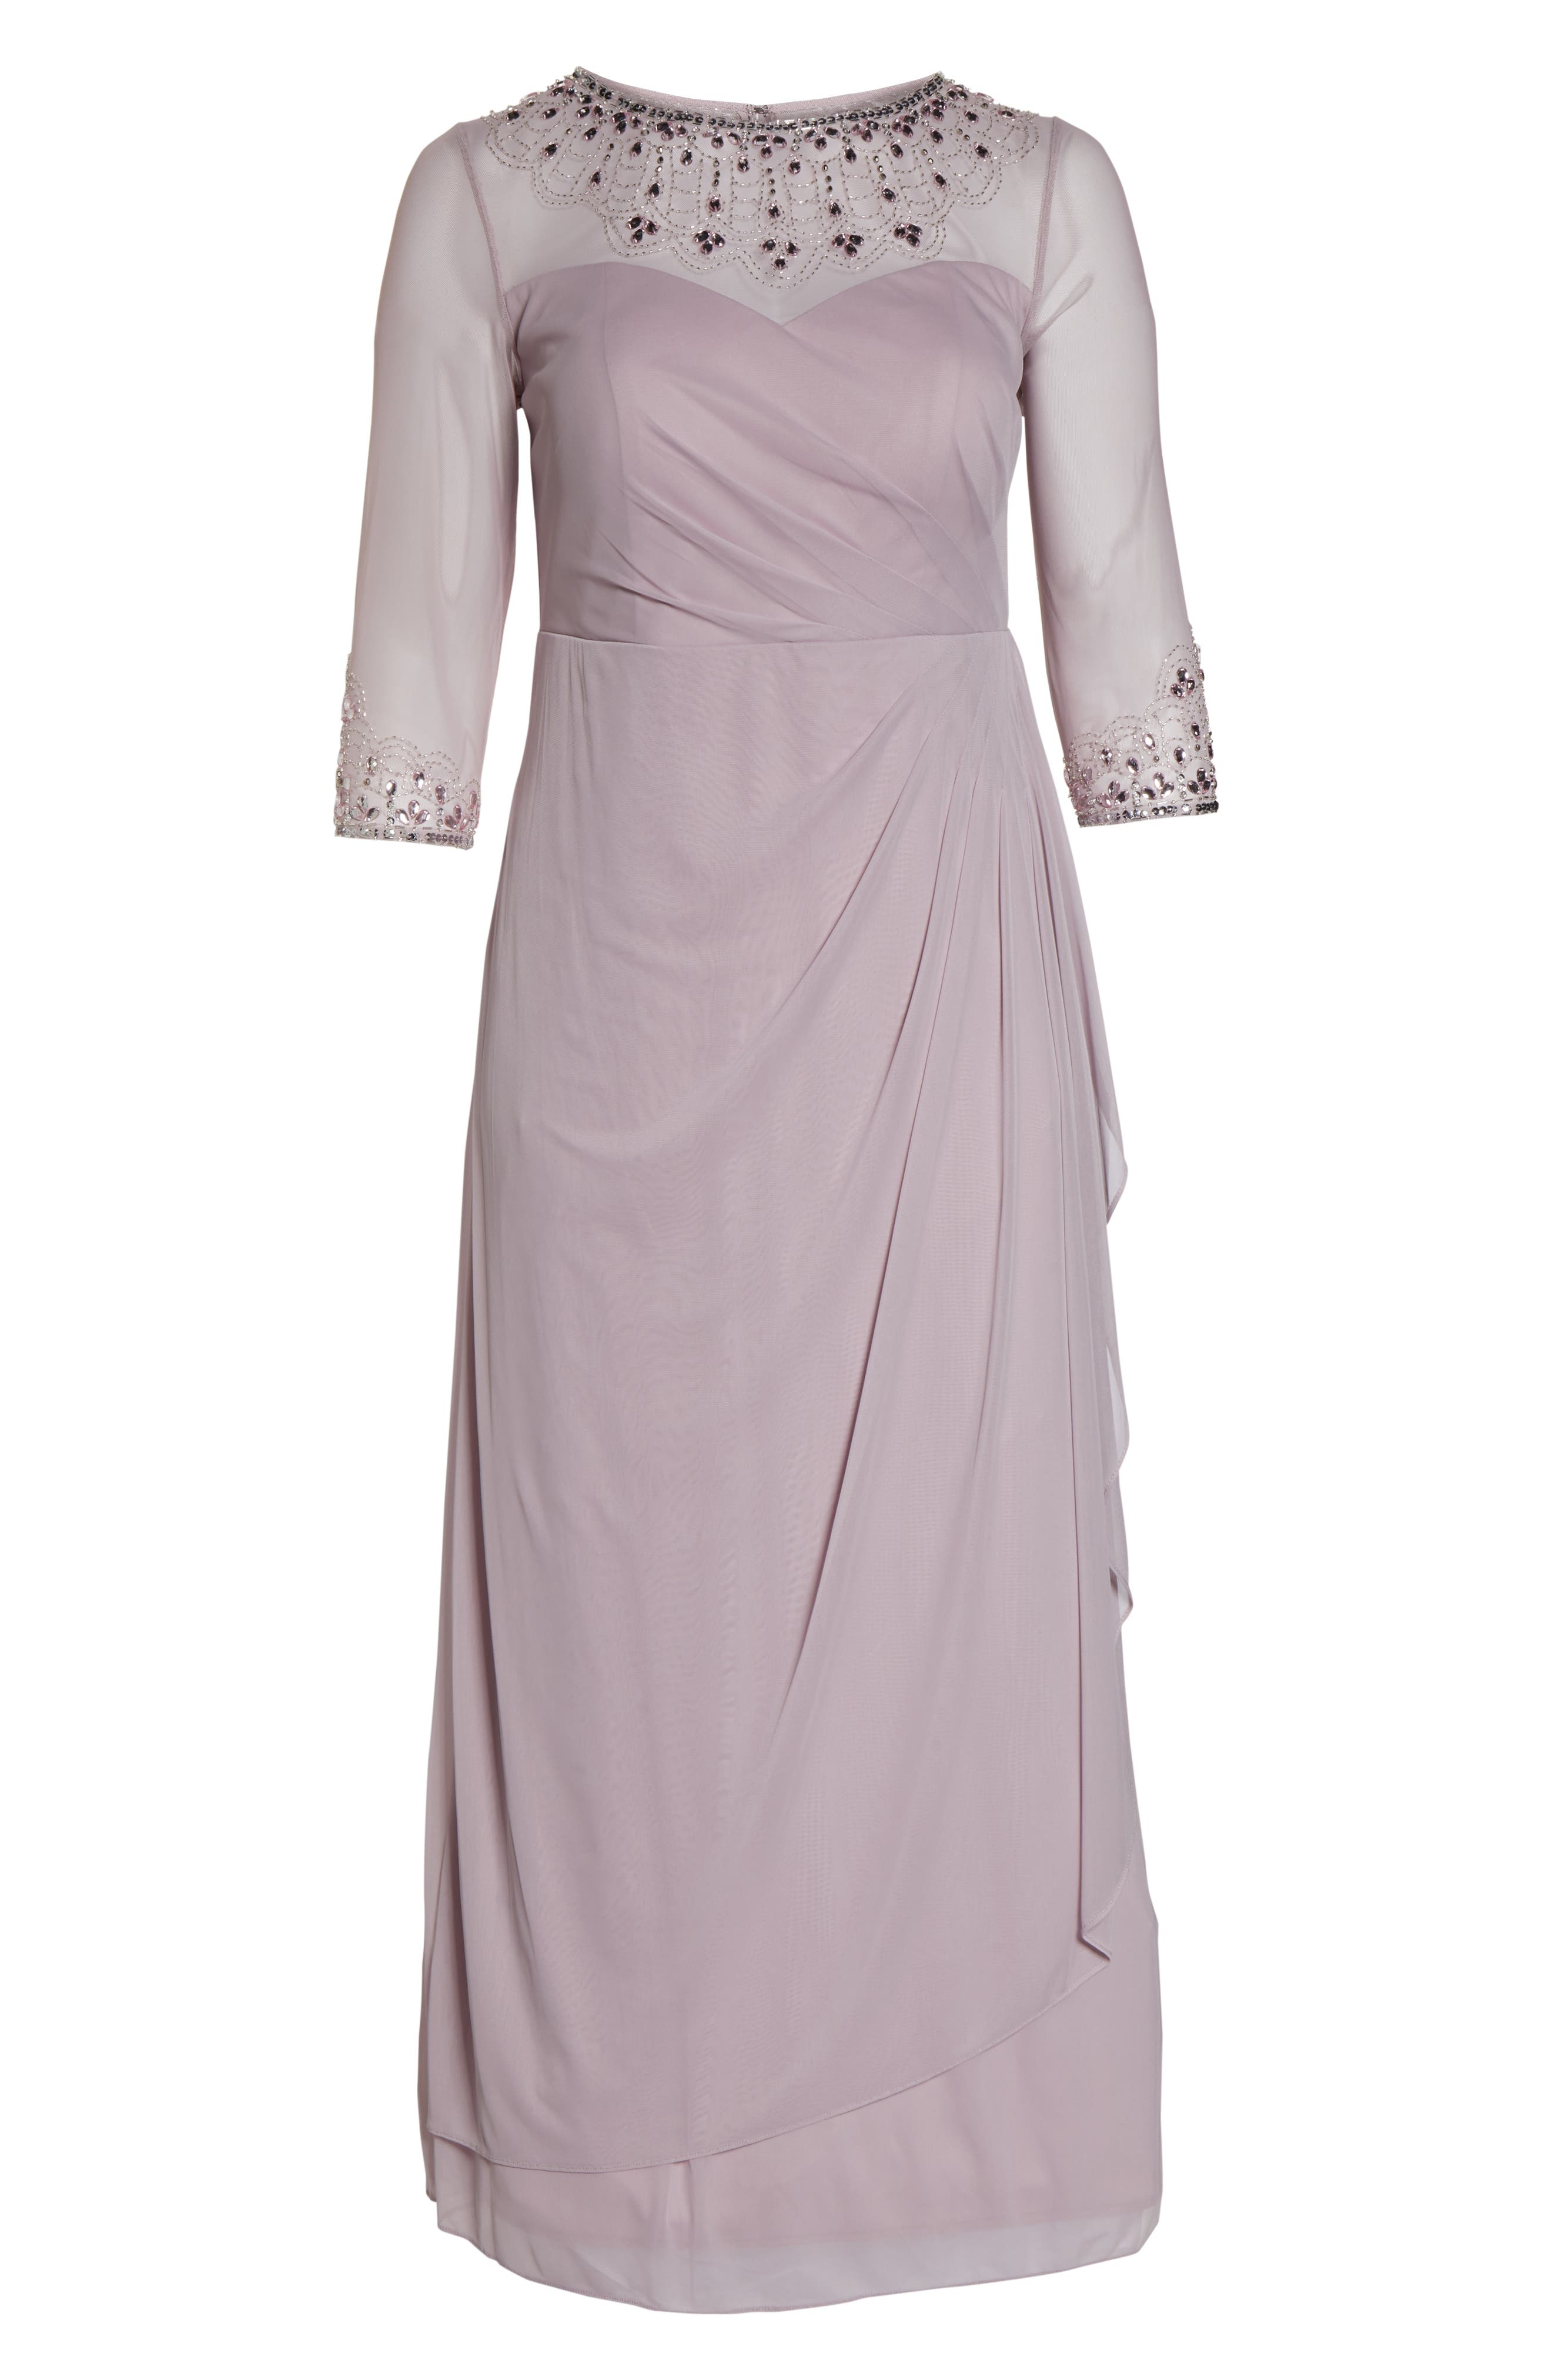 ALEX EVENINGS, Beaded Illusion Neck A-Line Gown, Alternate thumbnail 7, color, SMOKEY ORCHID